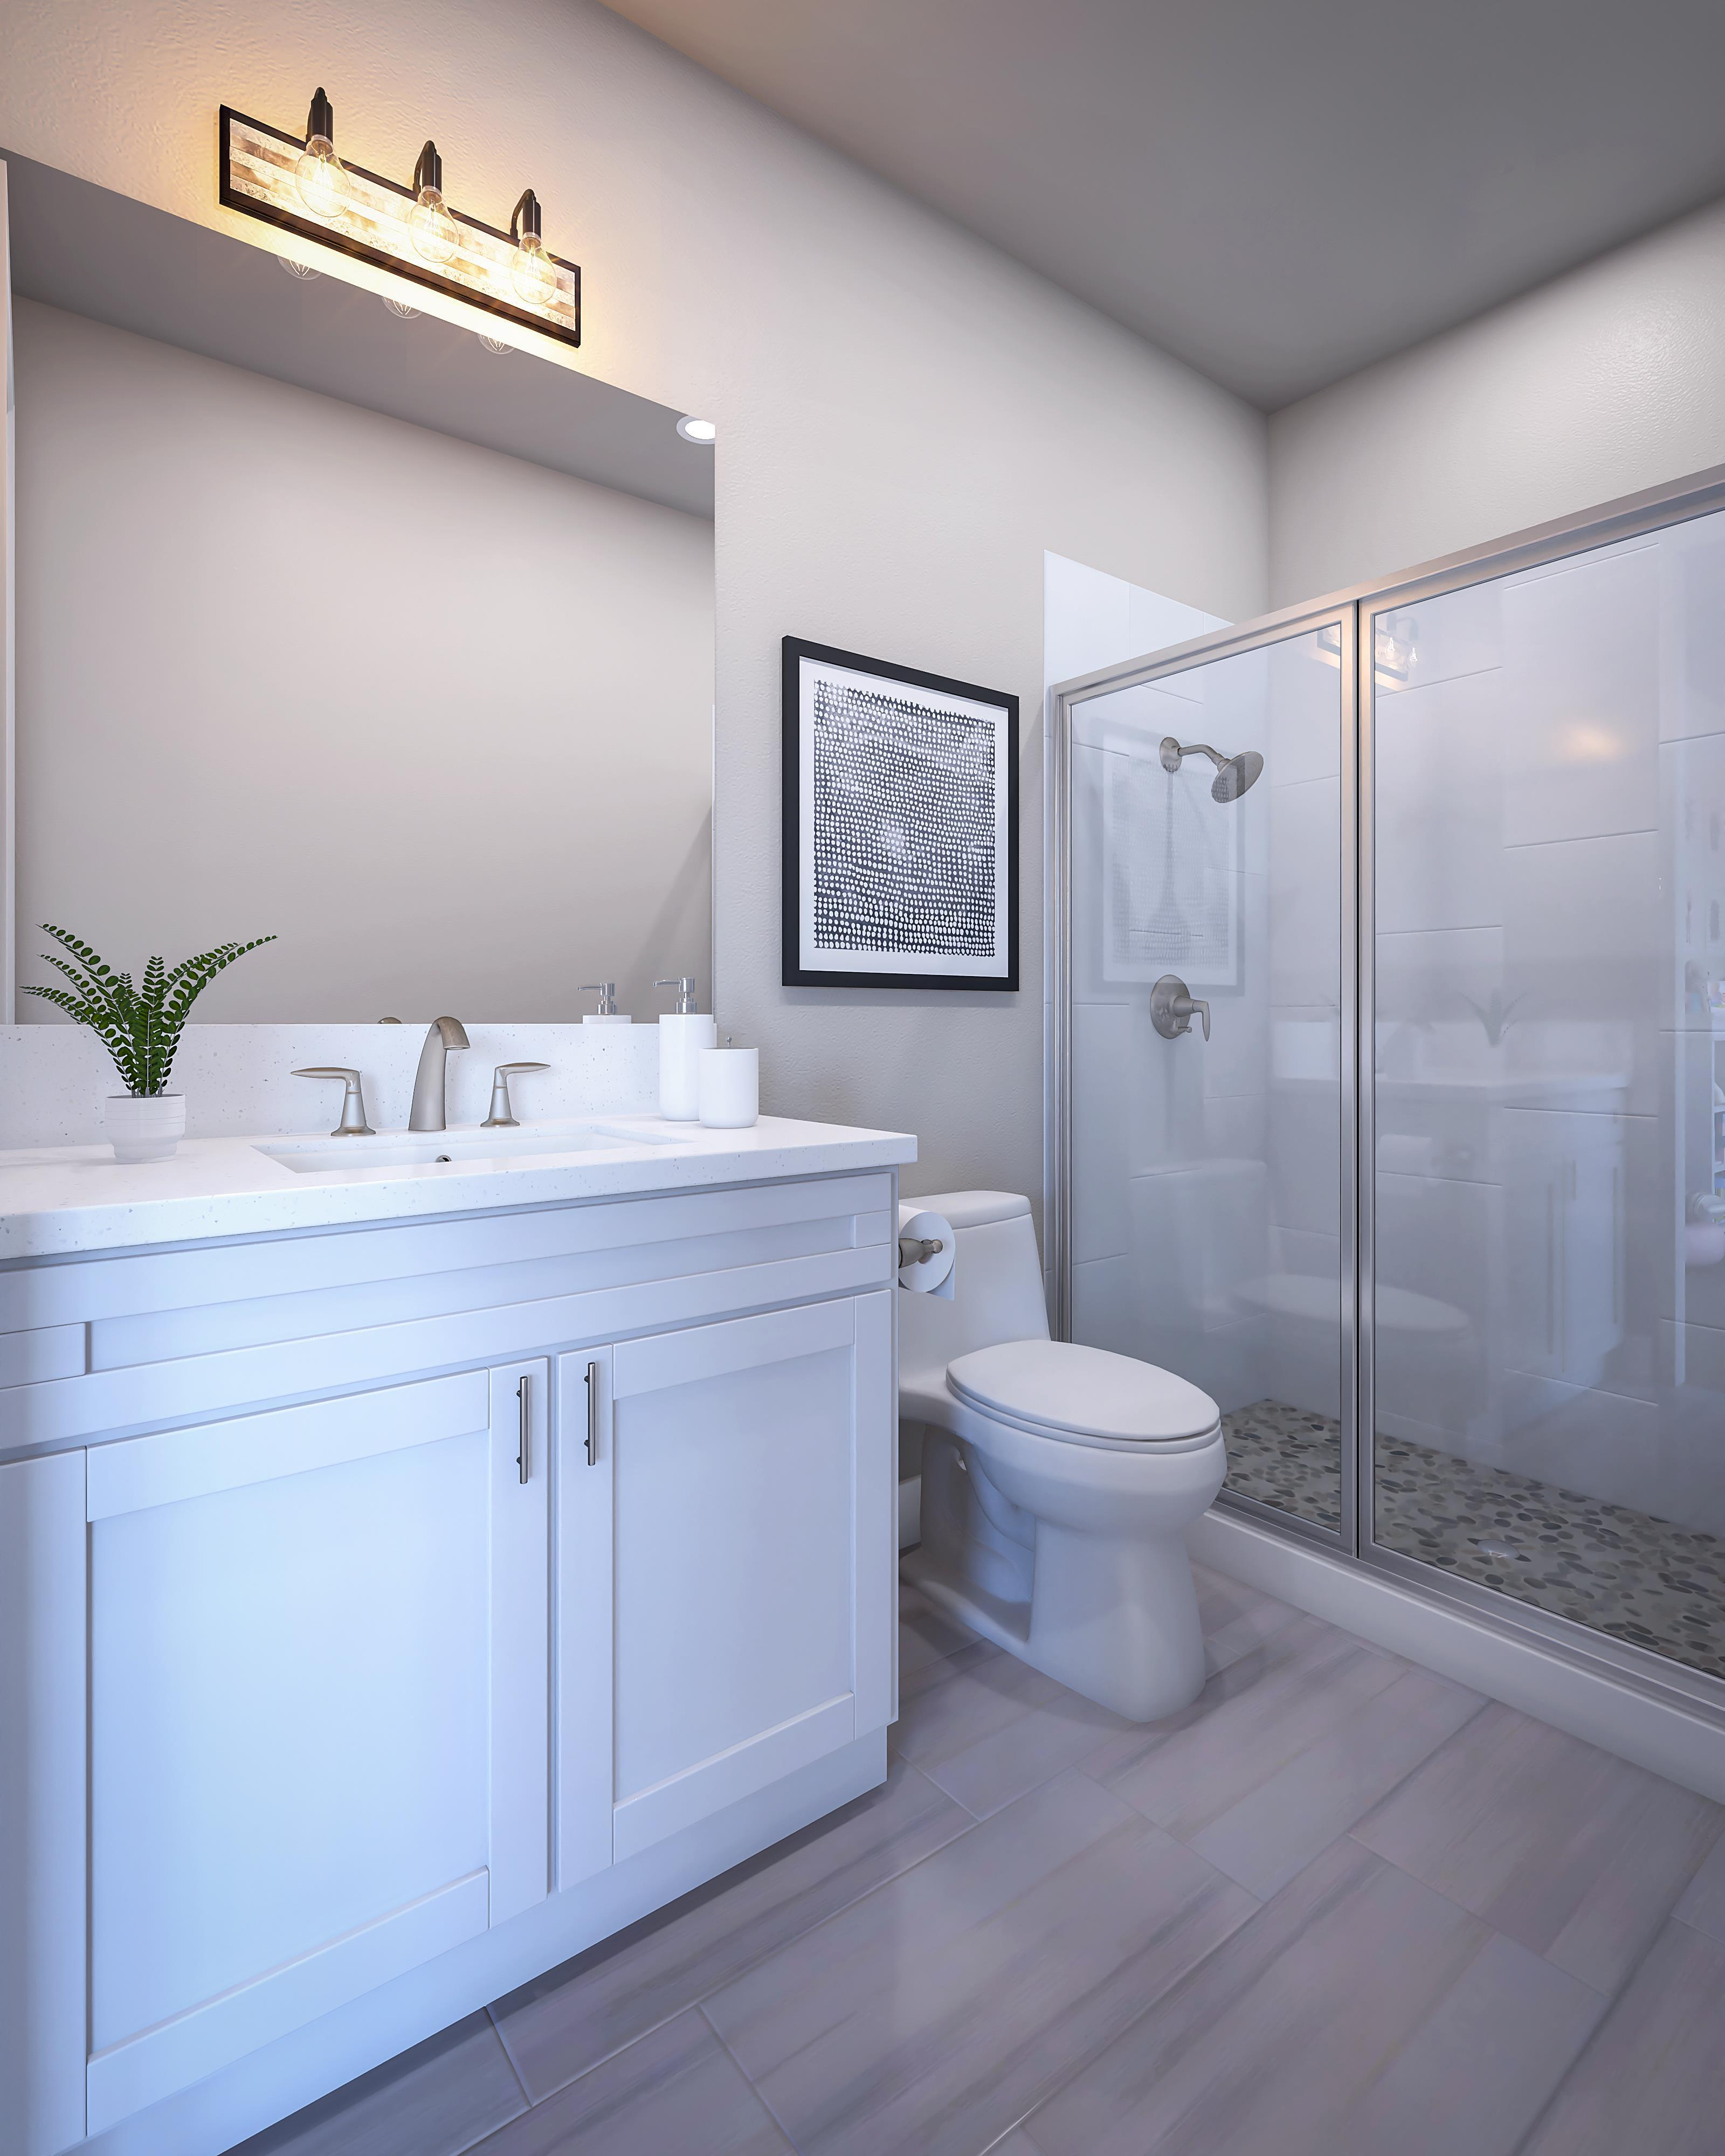 Bathroom featured in the Residence 2X By Pacific Legacy Homes in San Diego, CA